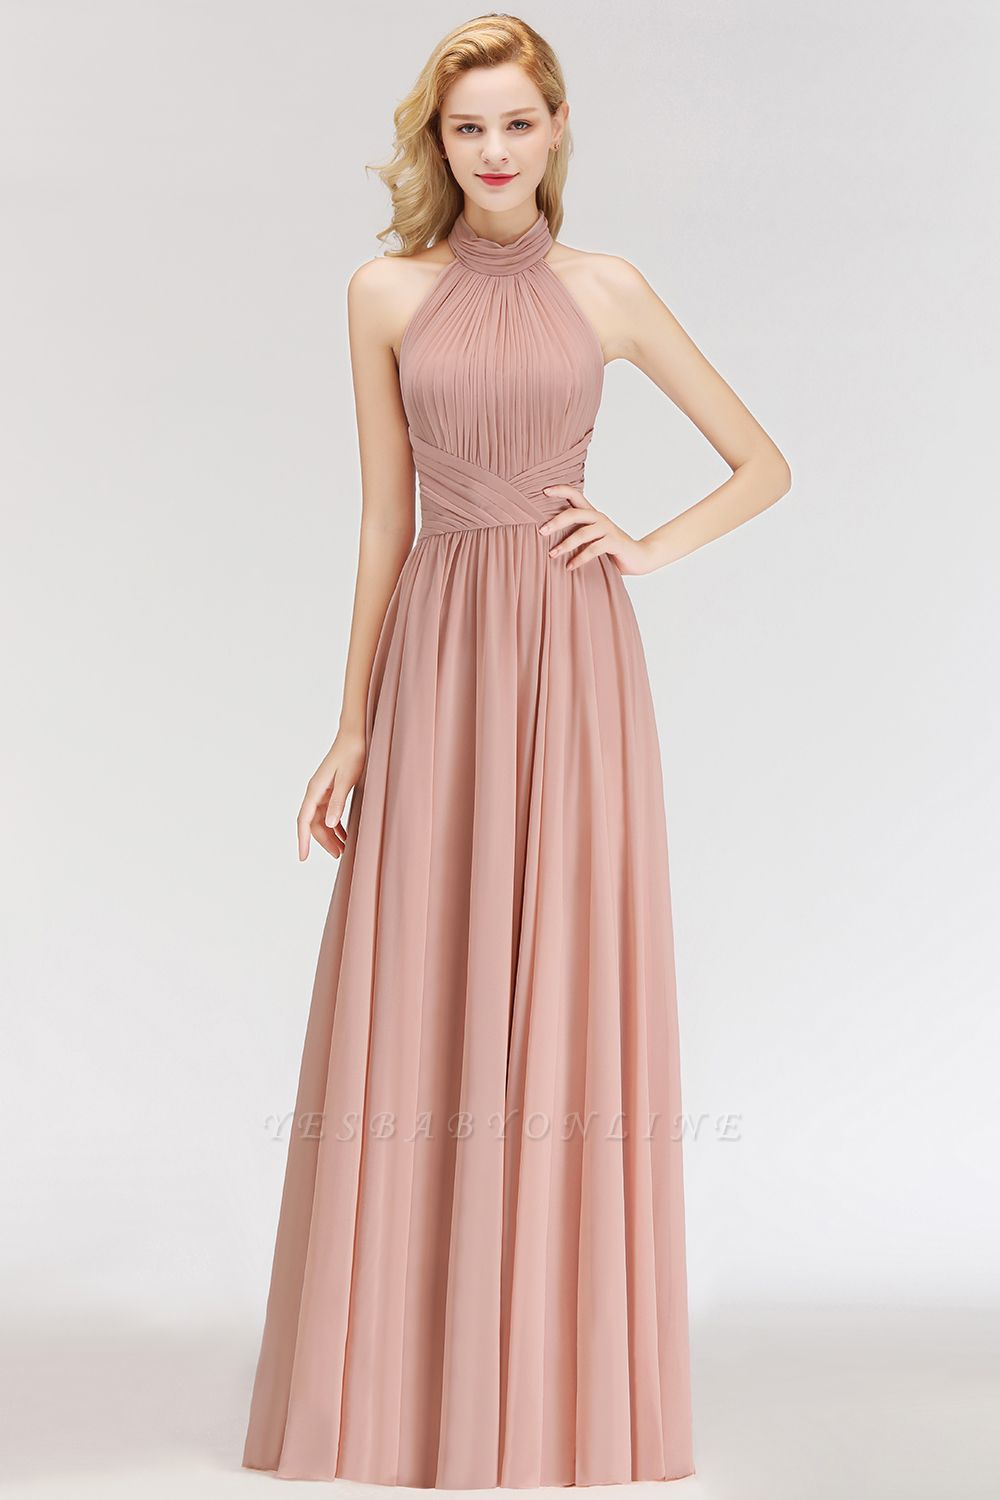 Halter A-line Chiffon Floor-length Backless Sleeveless Fashion Bridesmaid Dress